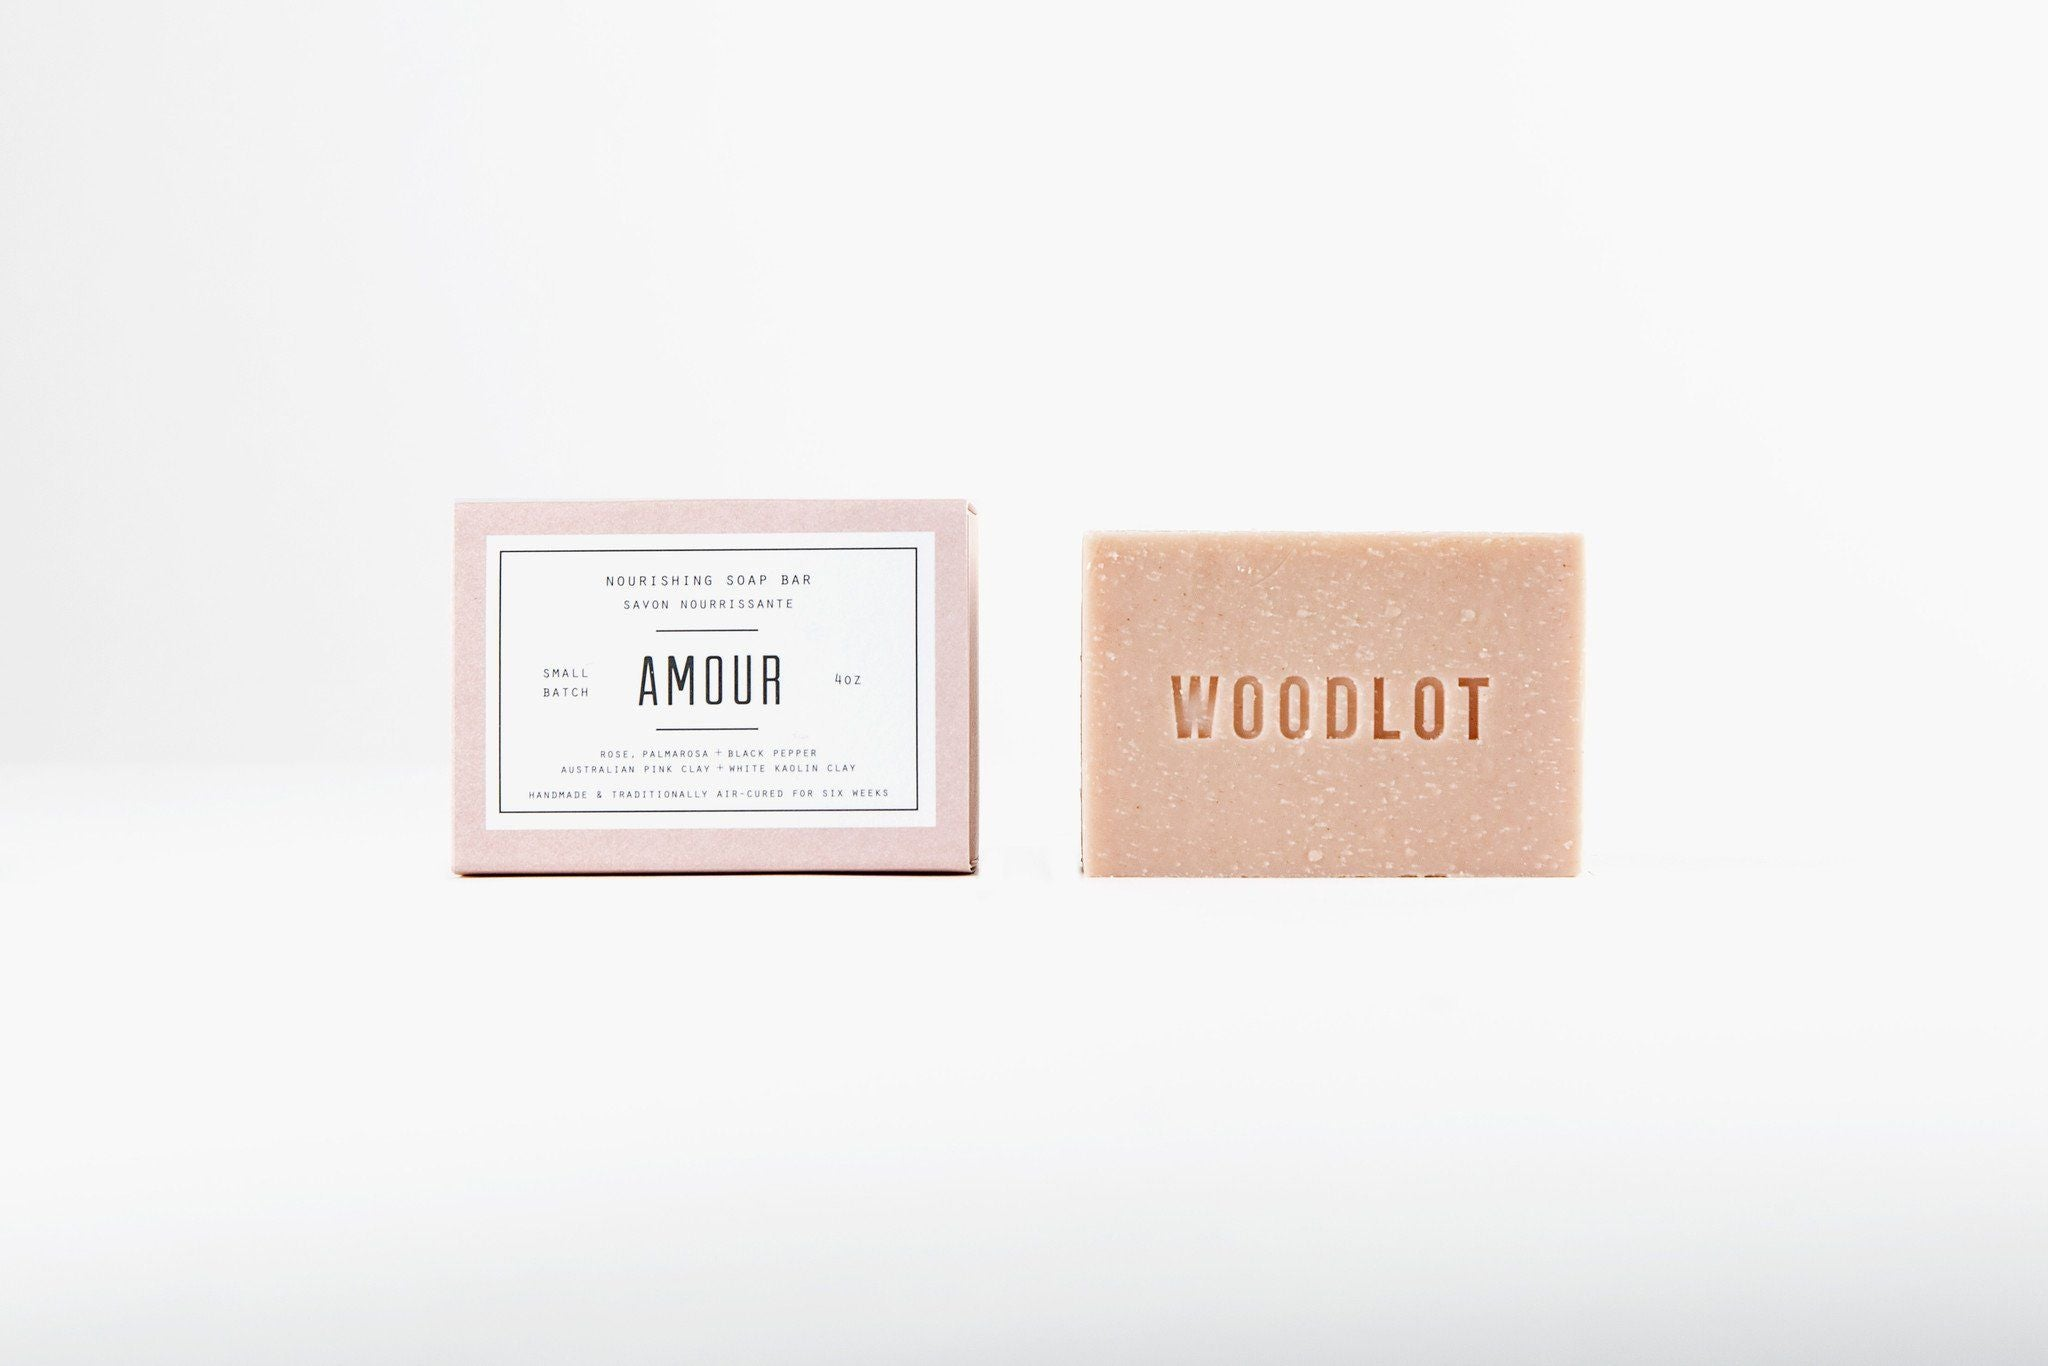 Woodlot Amour Soap